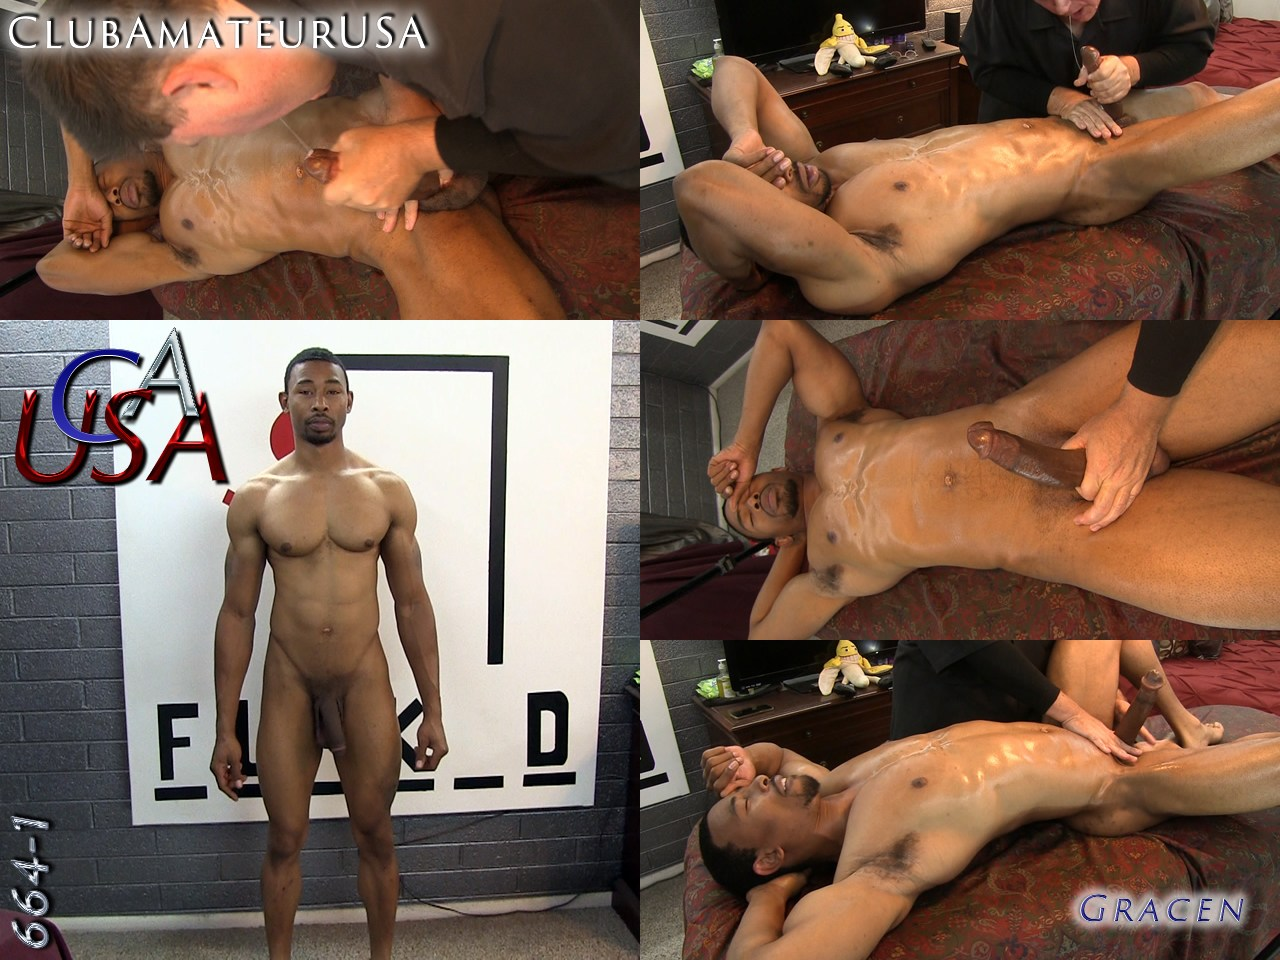 Download or Stream CAUSA 664 Gracen - 1 of 2 - Click Here Now